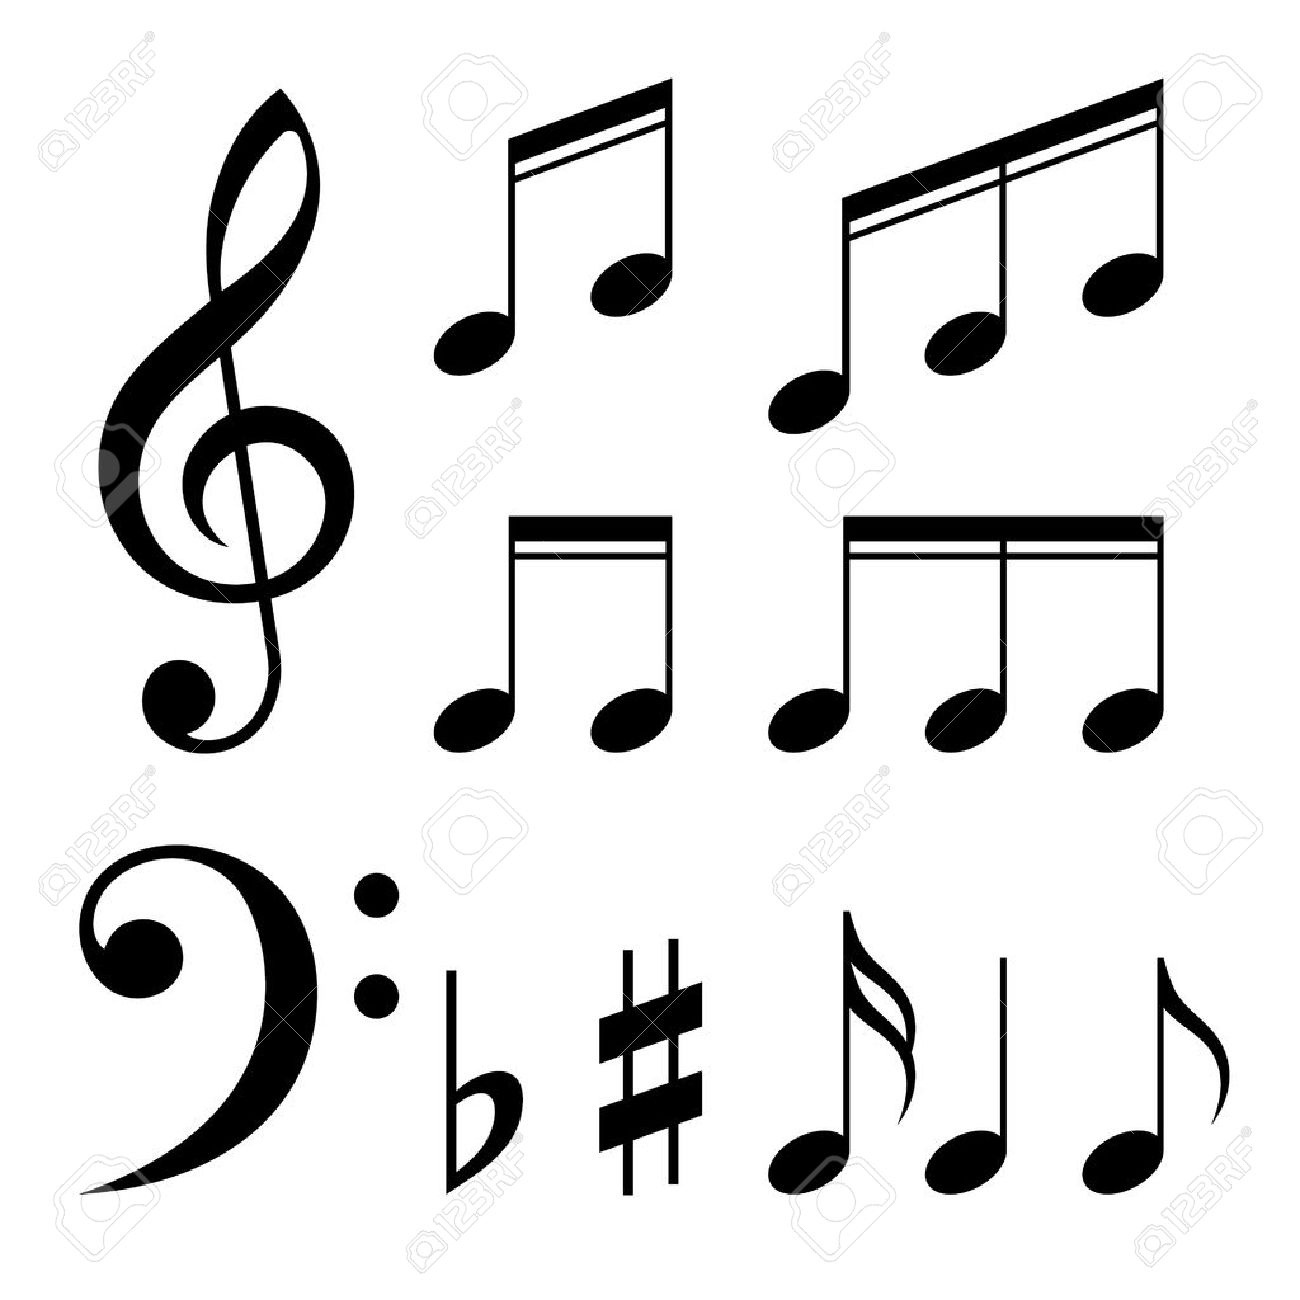 Set of music notes vector. Black and white silhouettes - 31446590